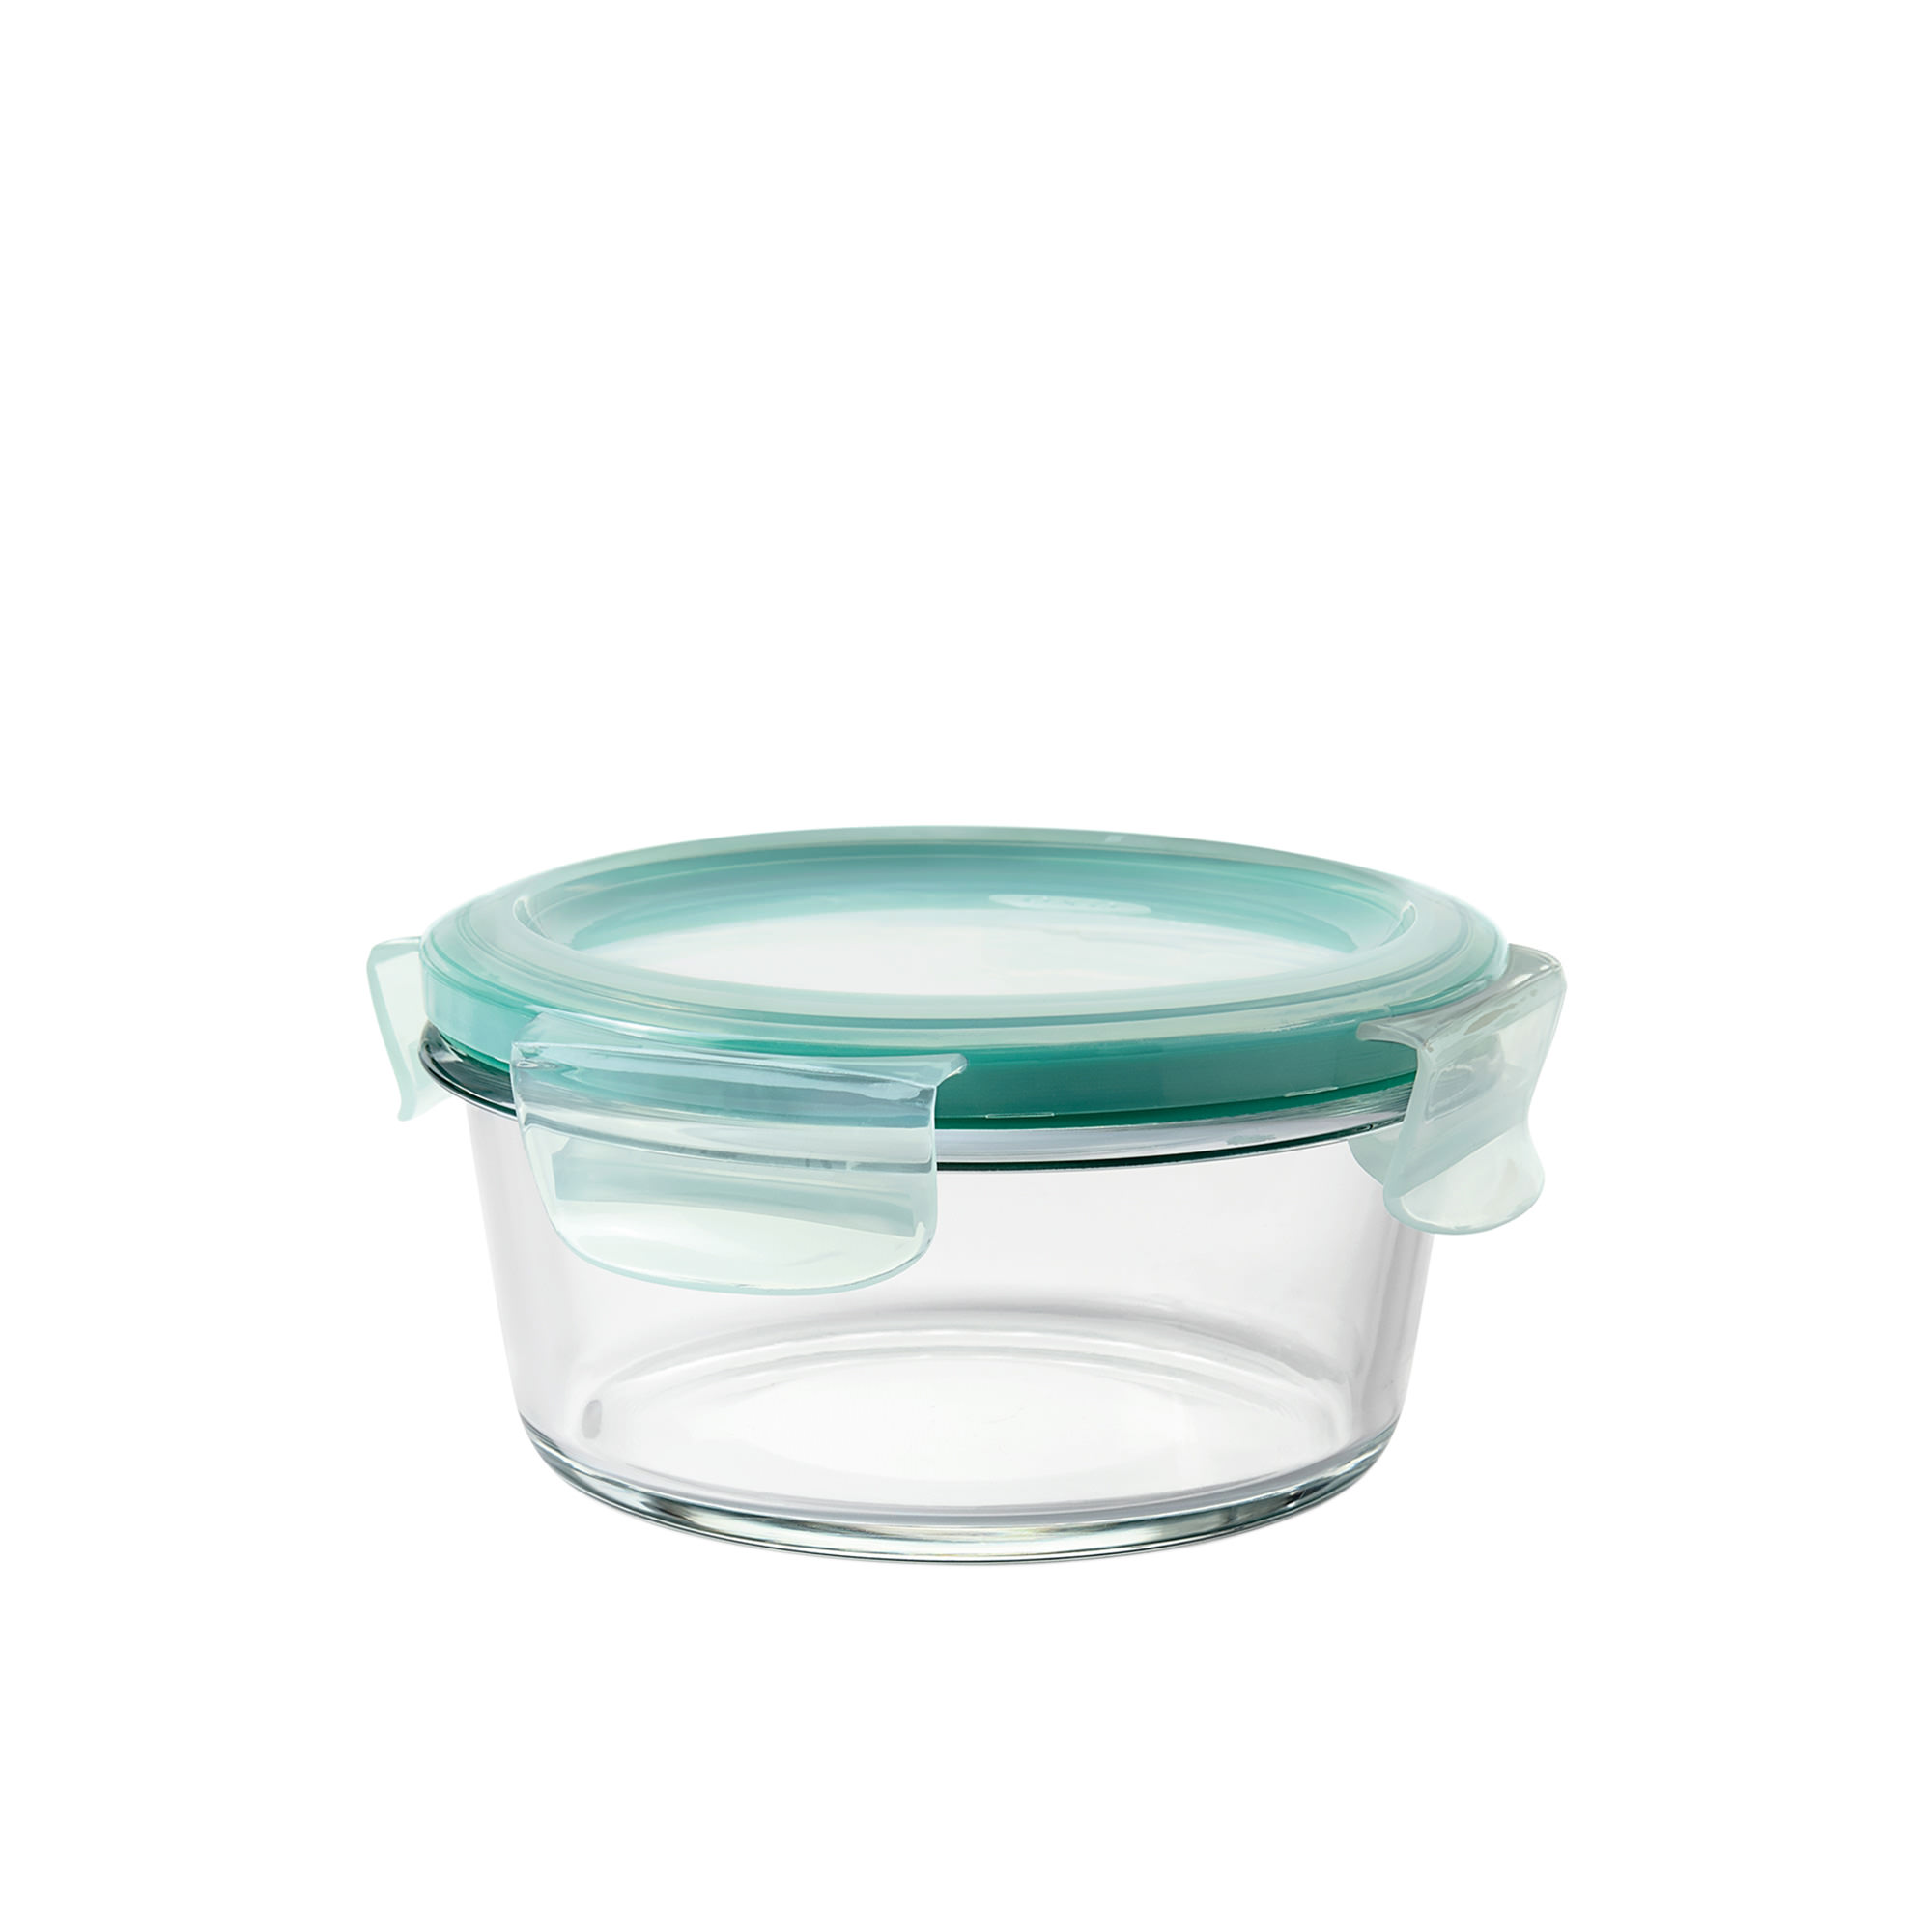 Oxo Good Grips Round Smart Seal Glass Container 400ml